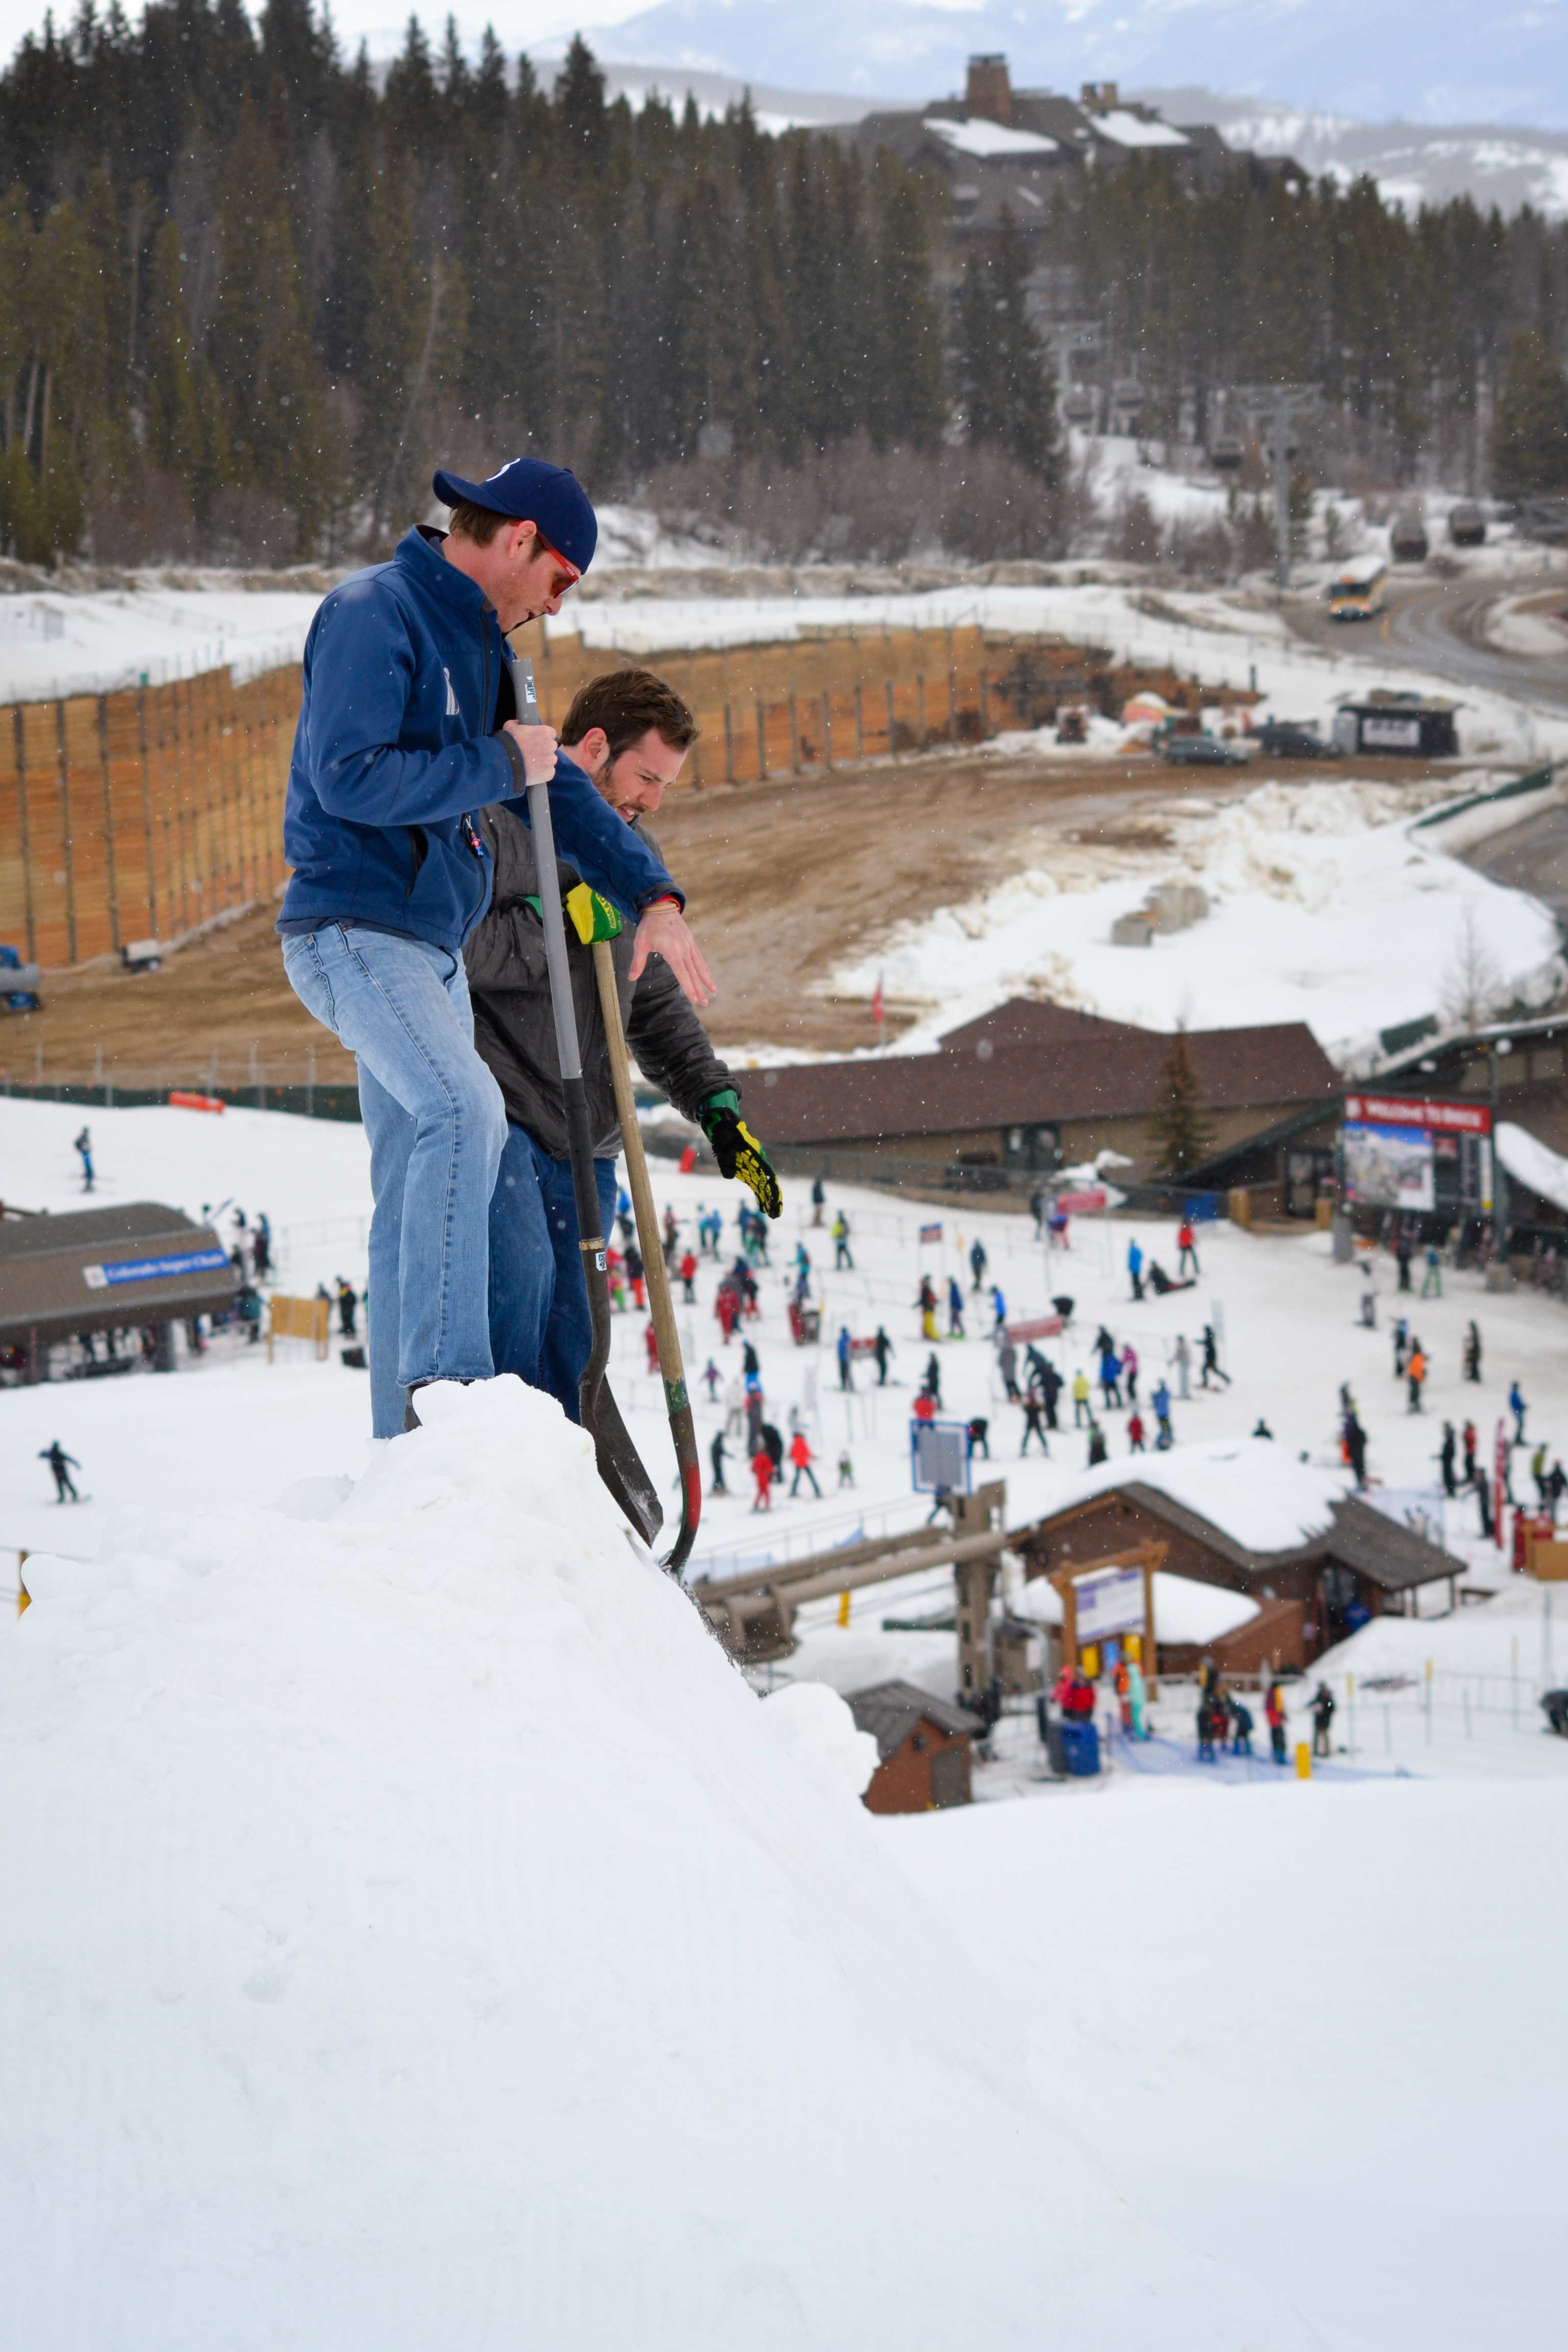 Scoping out the mini-pipe at Breck